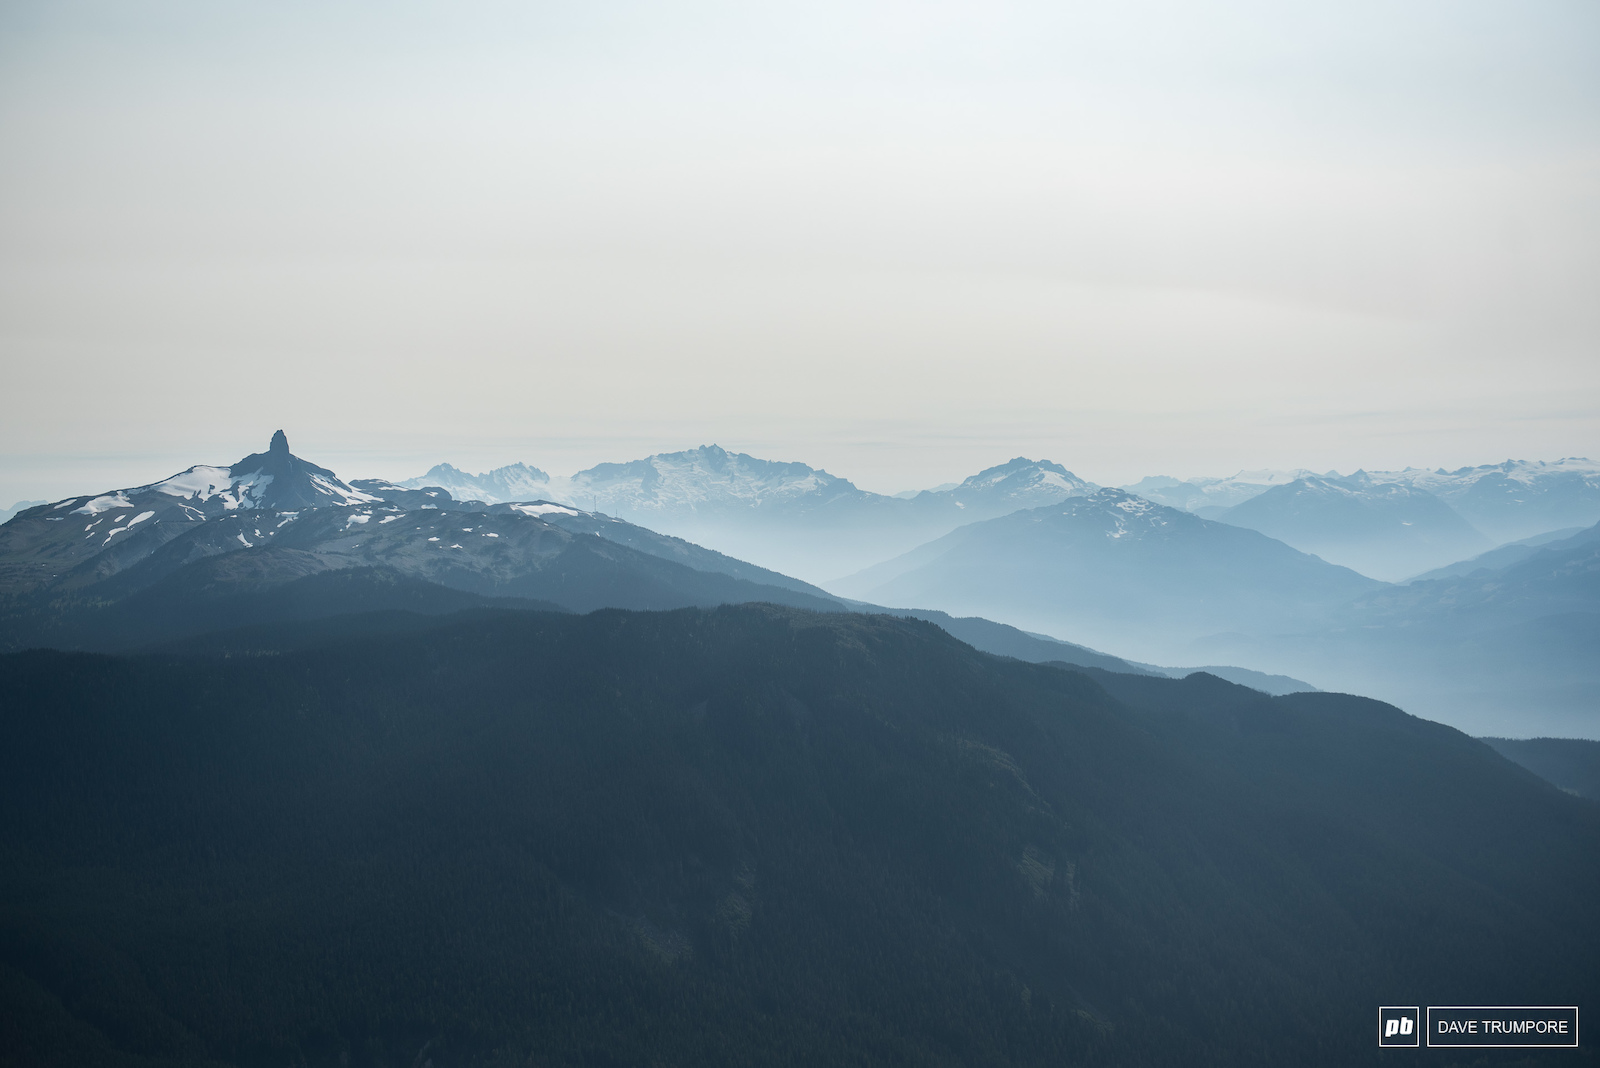 All the views from the top of Whistler Peak.